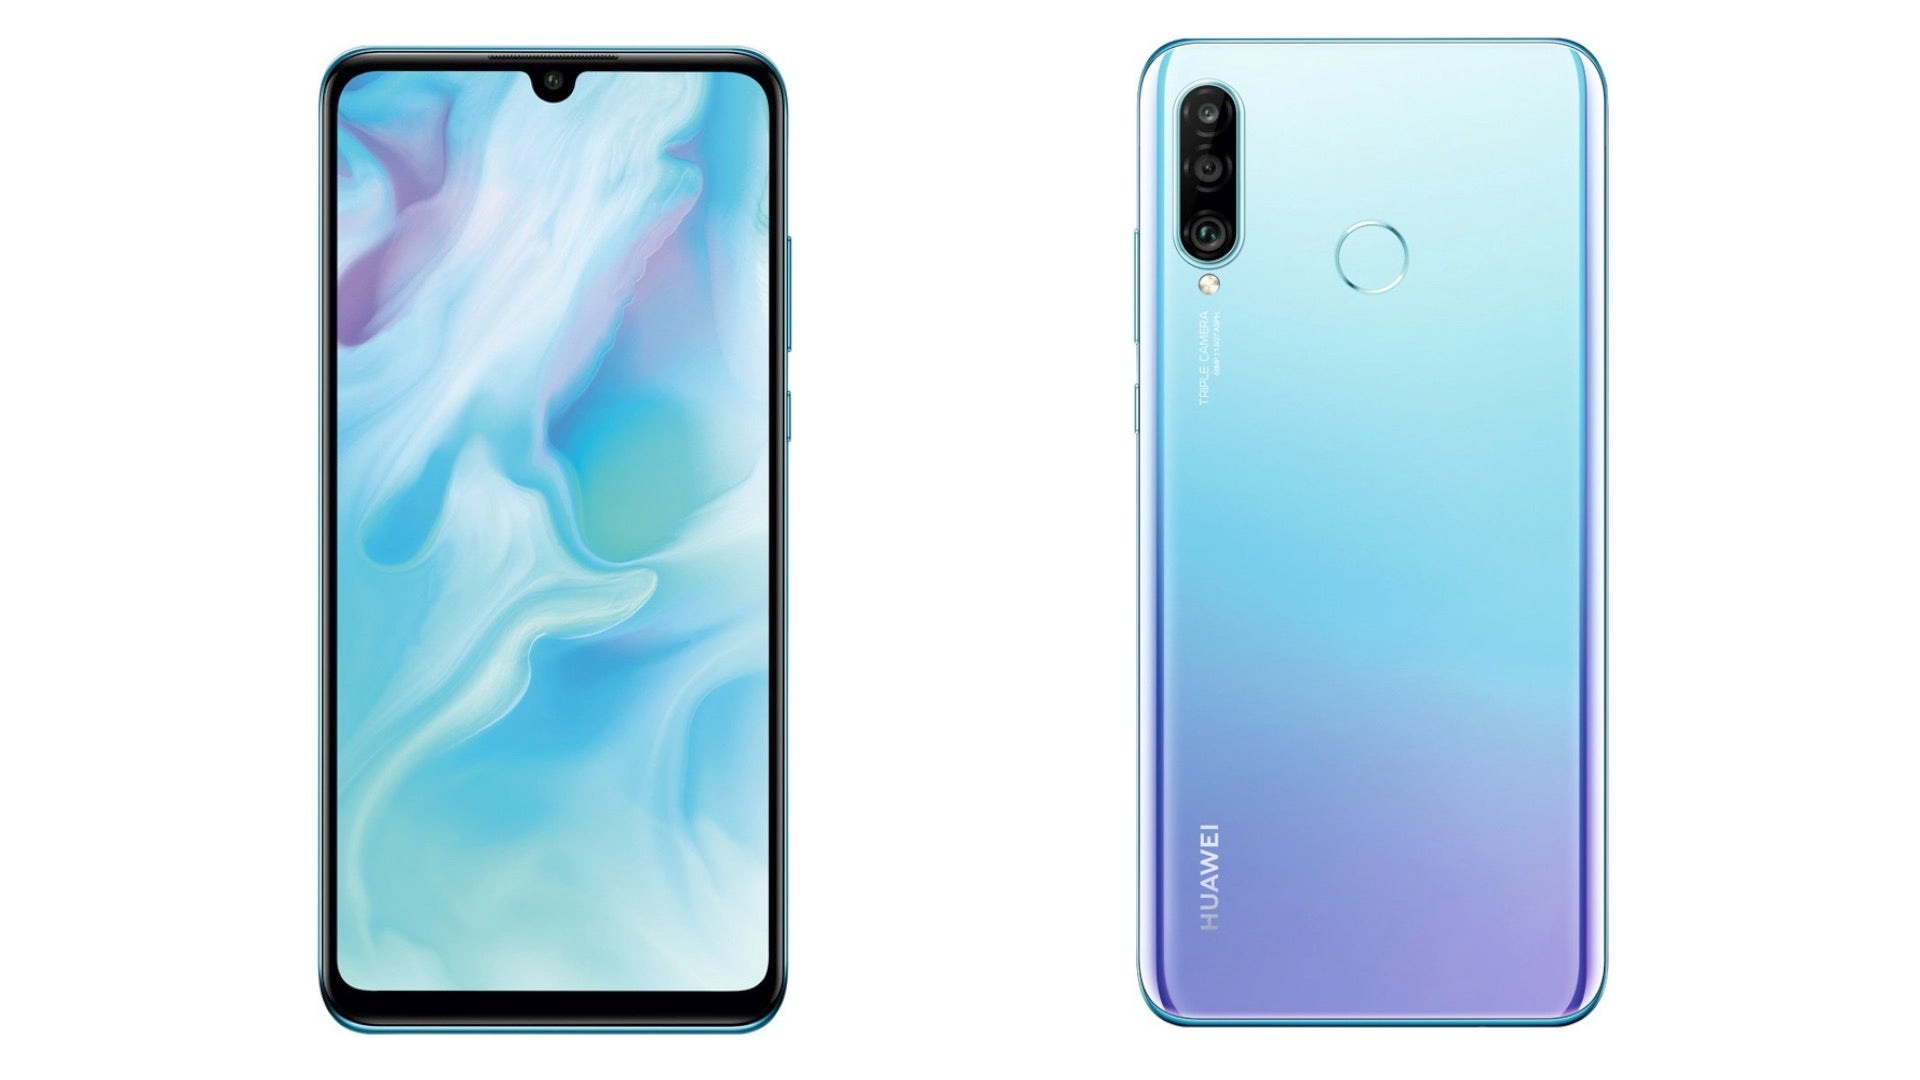 Huawei P30 Lite New Edition 6GB/256GB Dual SIM Breathing Crystal